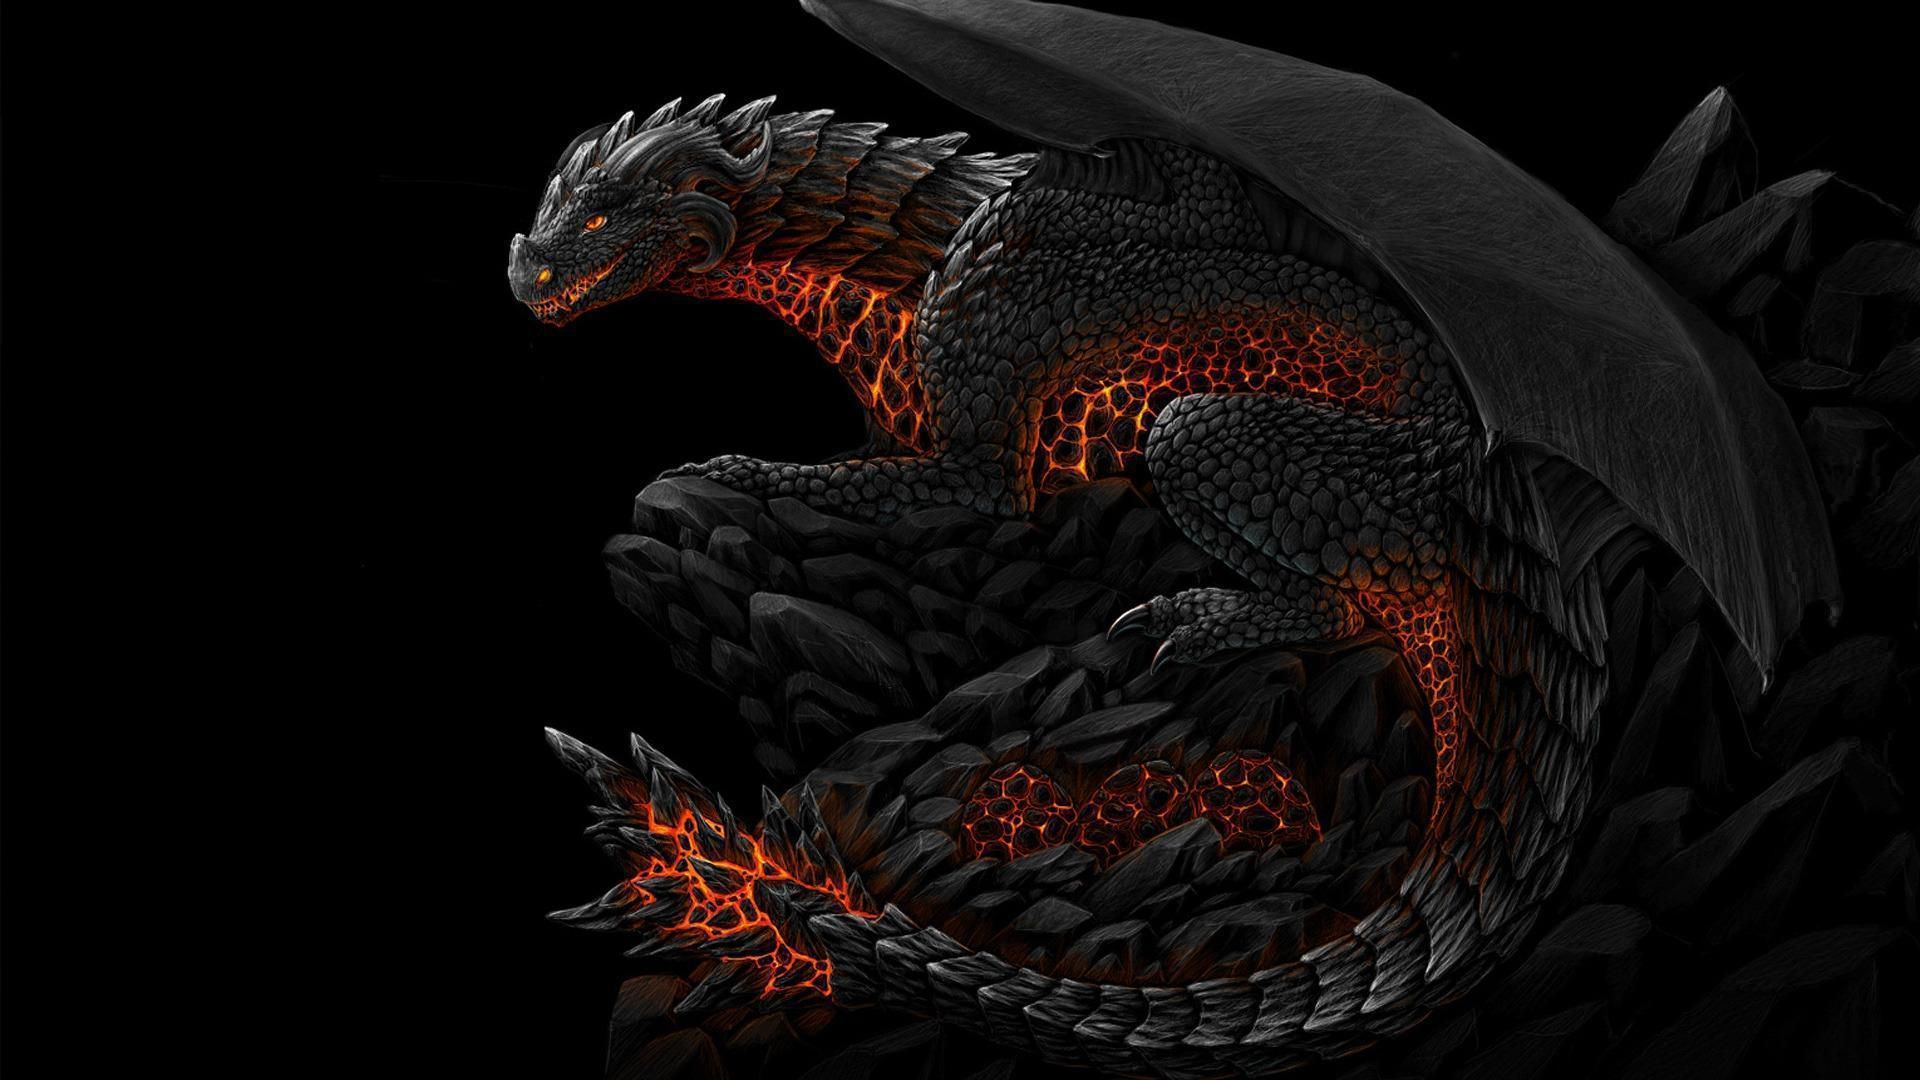 Black Dragon High Quality Wallpapers